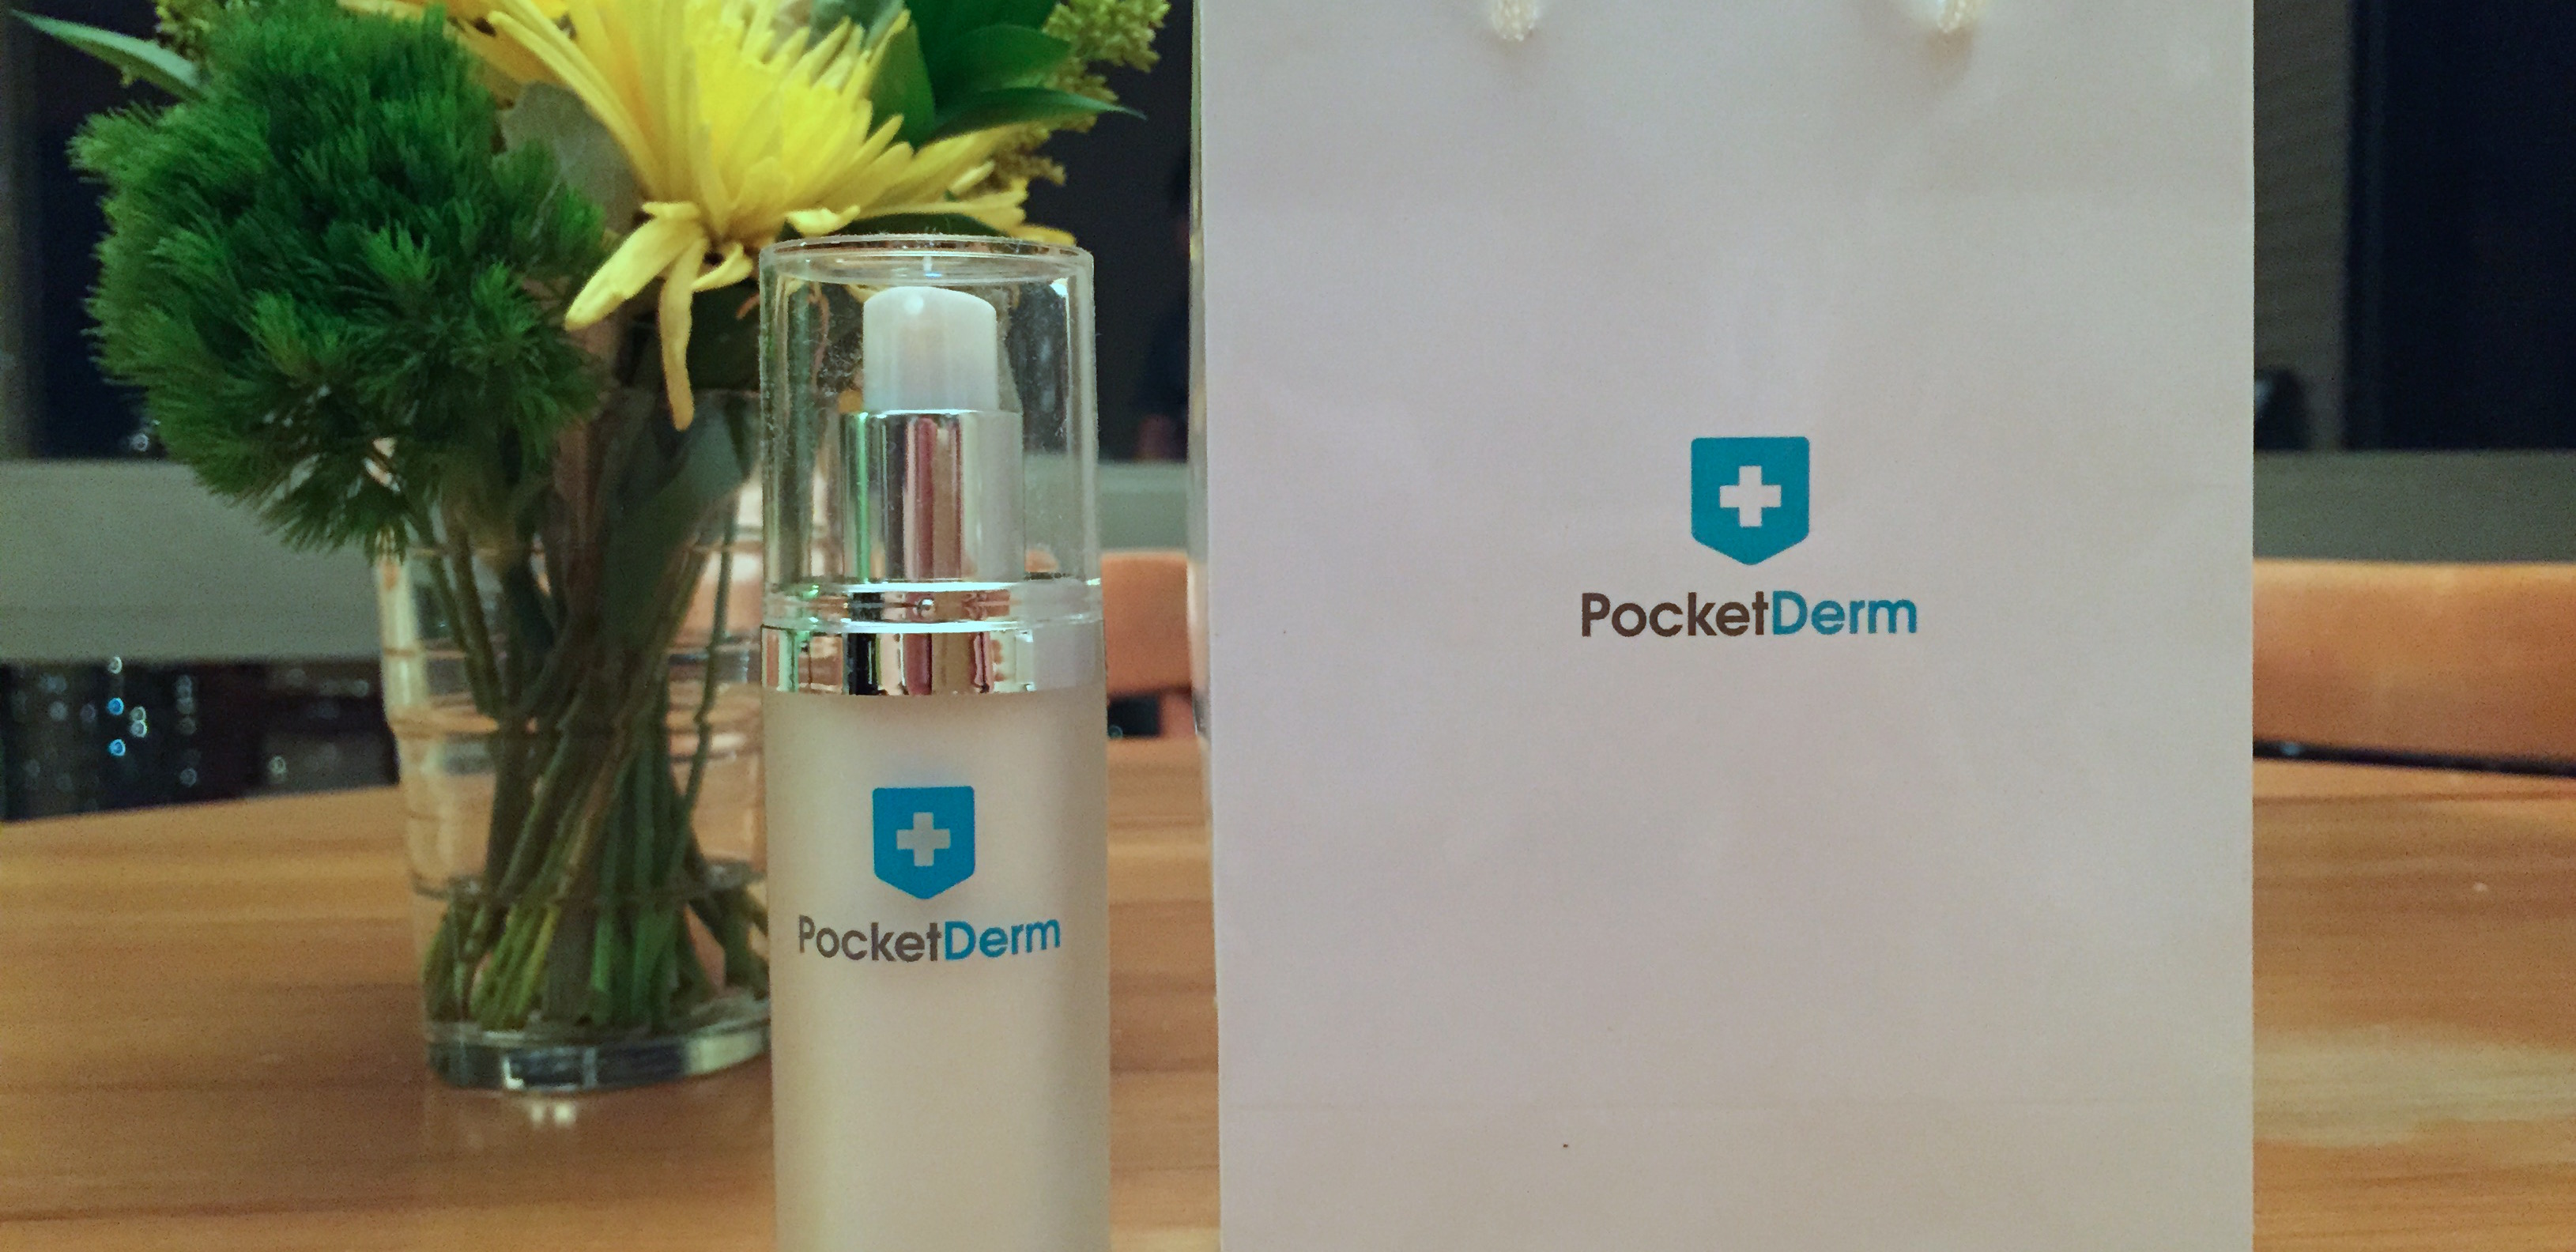 PocketDerm expands its online dermatology service to include anti-aging - The Next Web